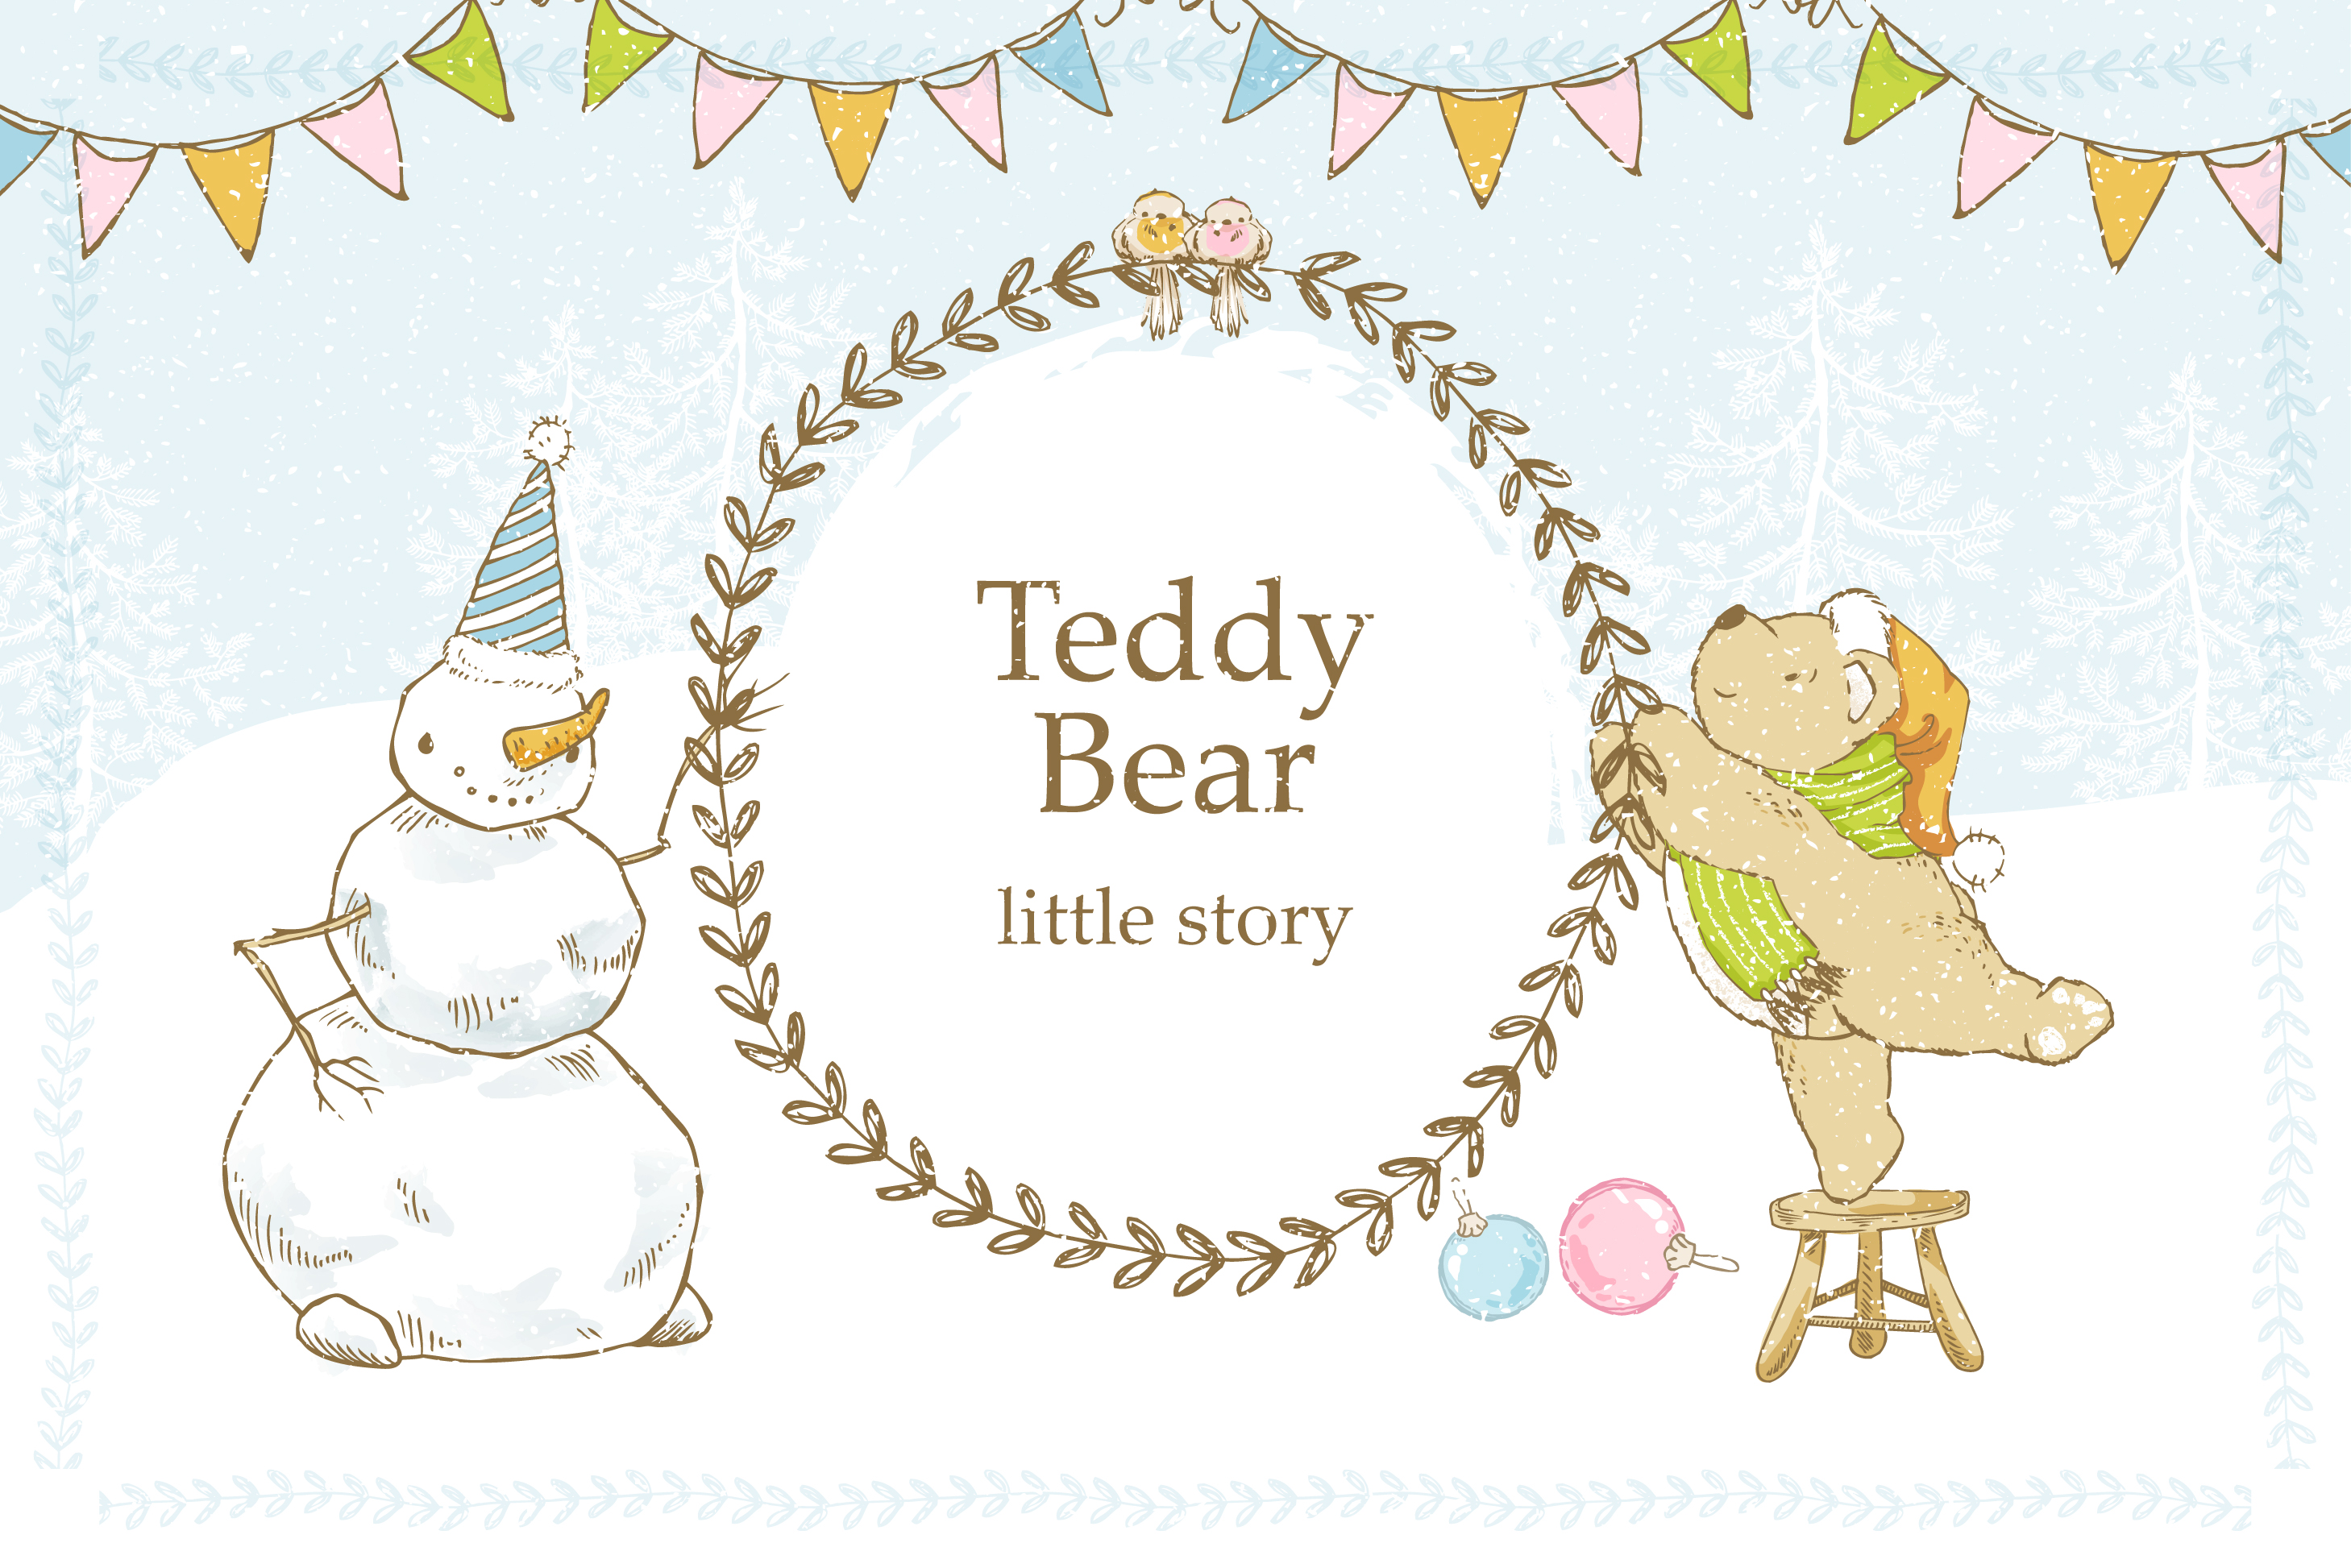 Teddy Bear little story. example image 1